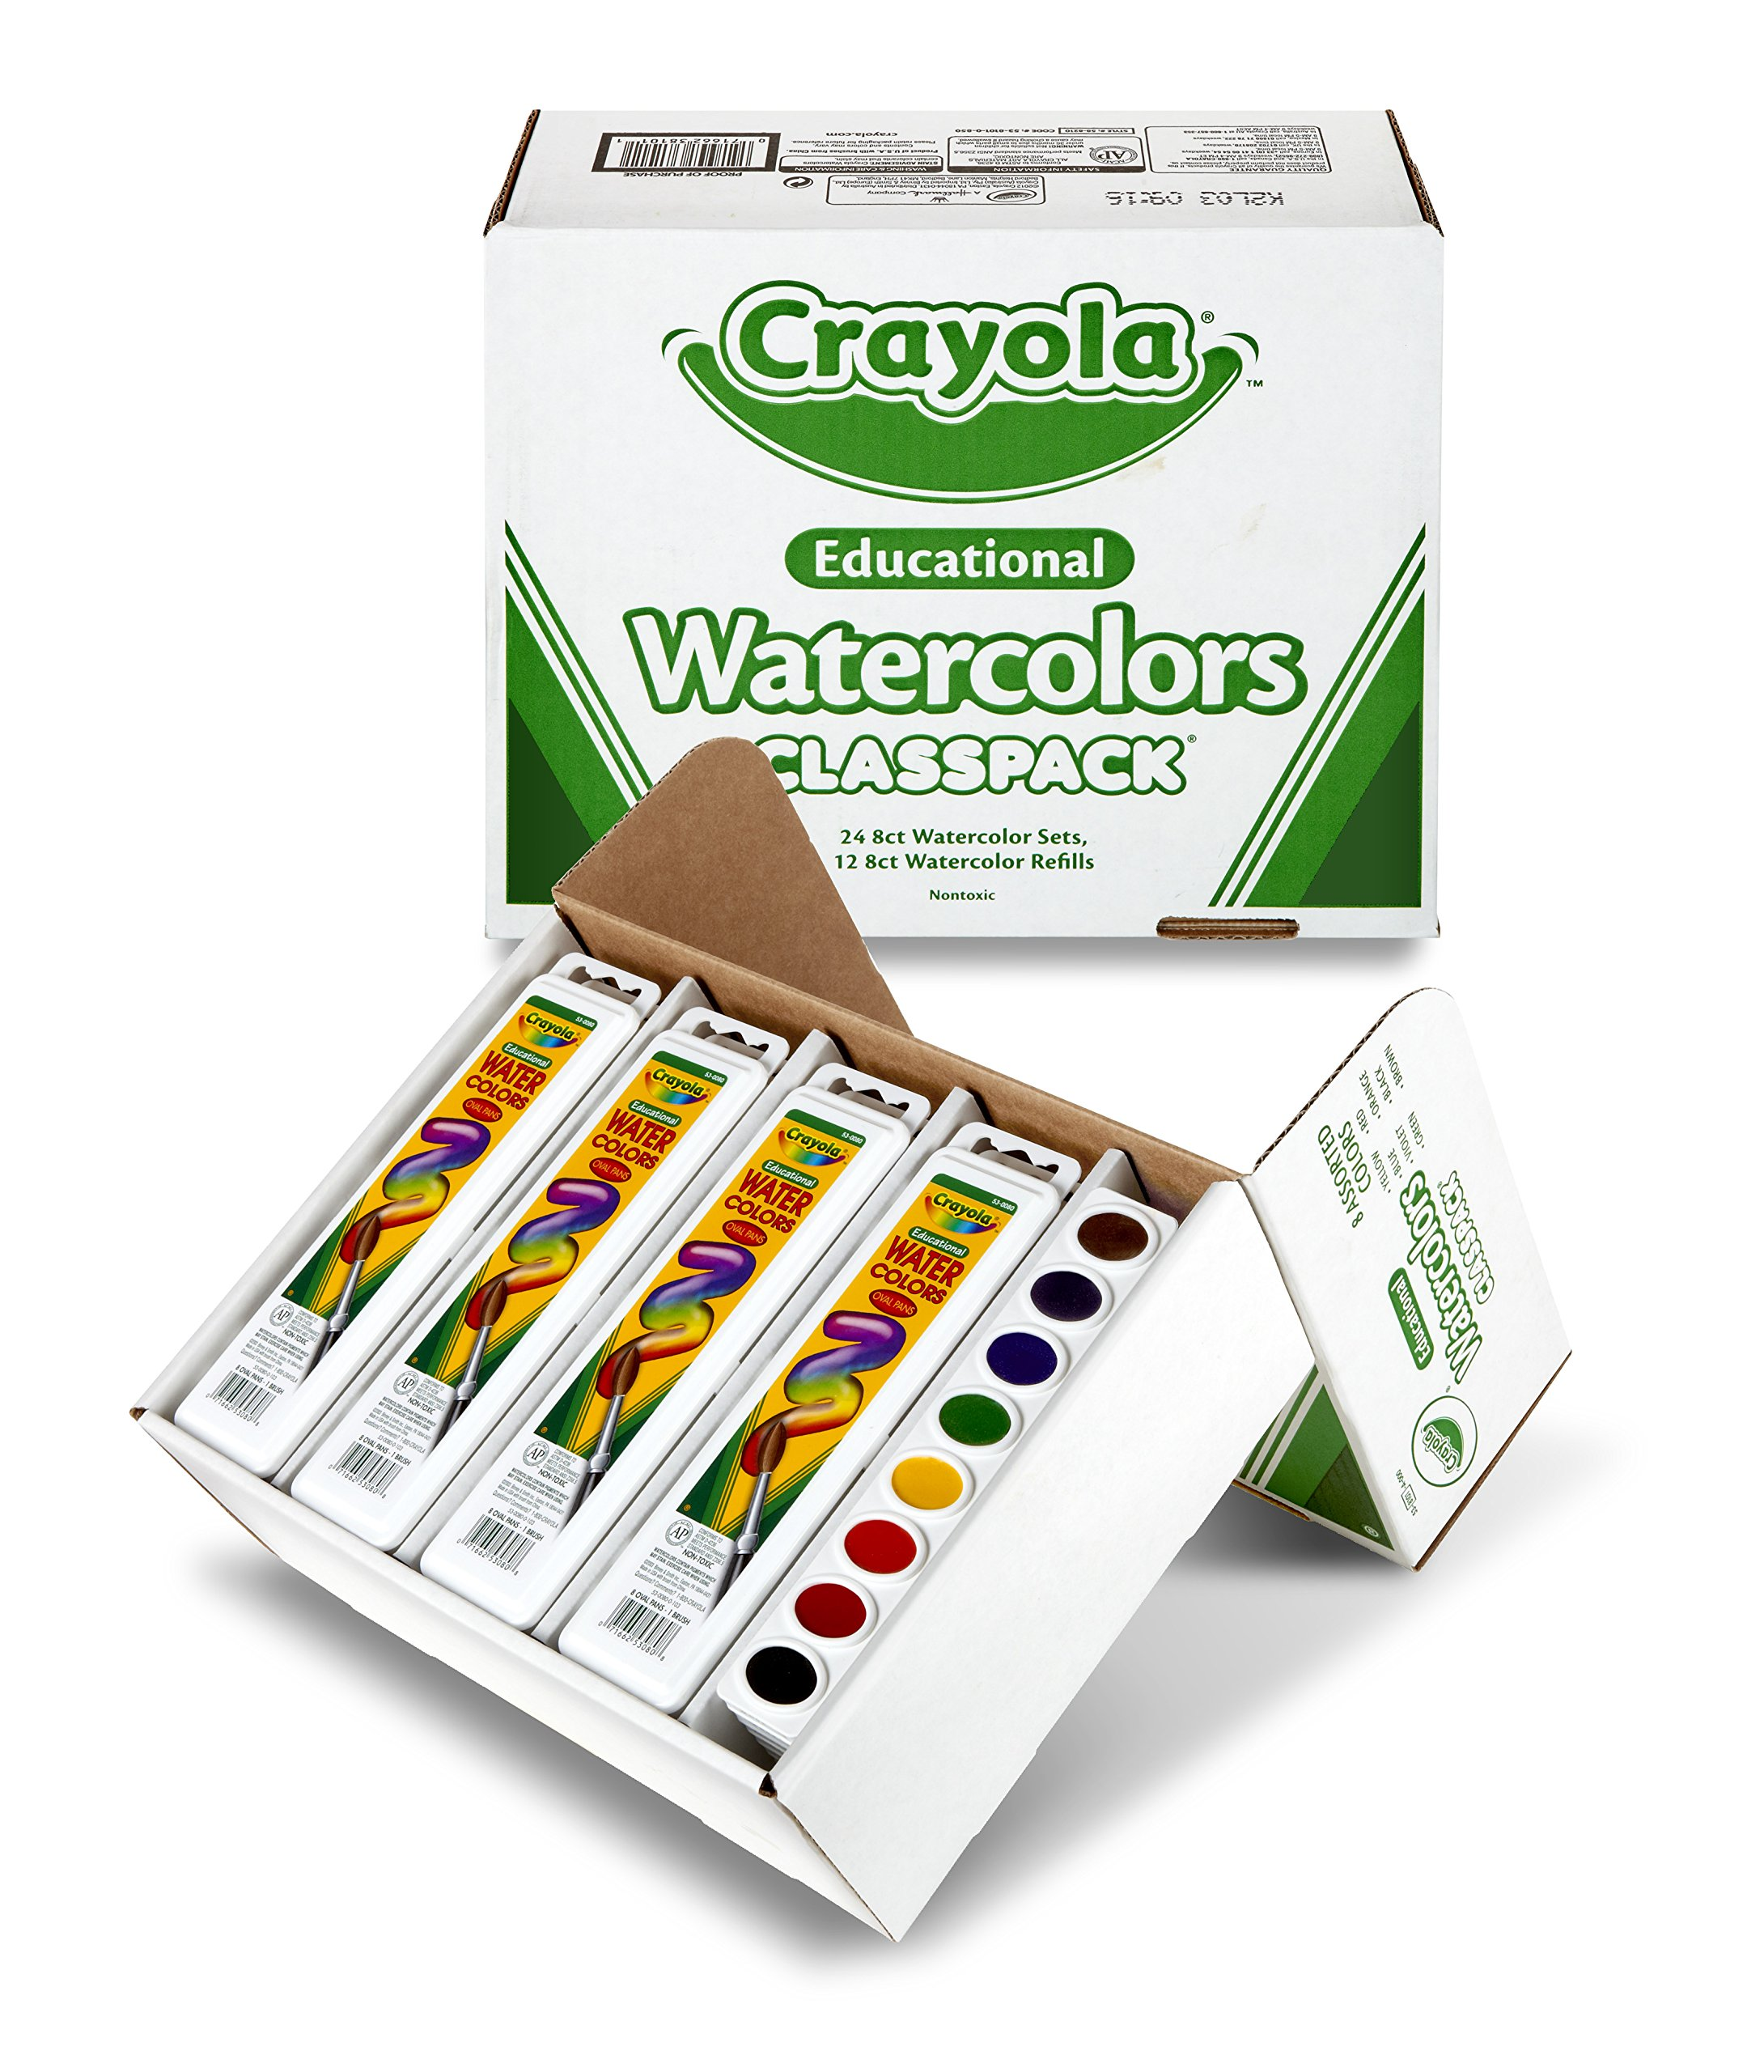 Crayola Educational Watercolors Classpack by Crayola (Image #1)